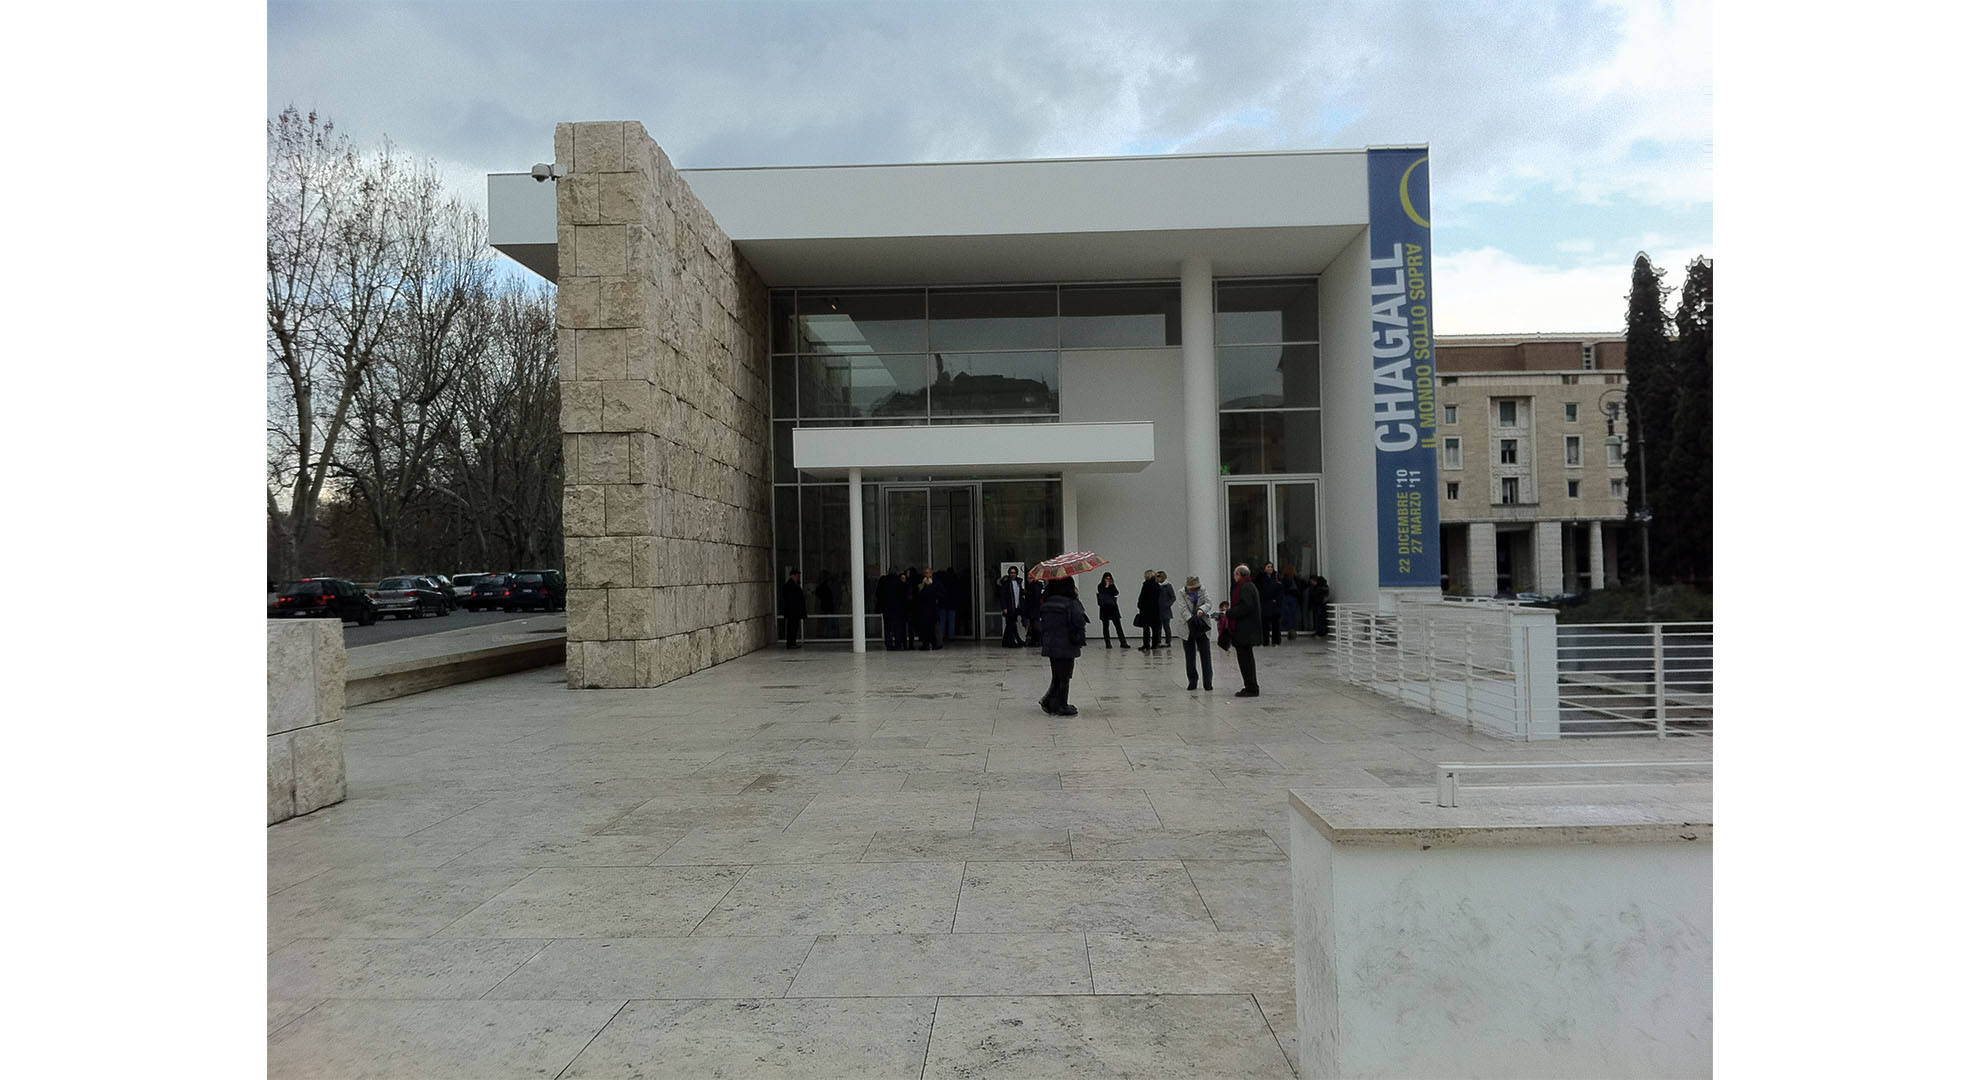 Main entrance of Ara Pacis Museum in Rome.